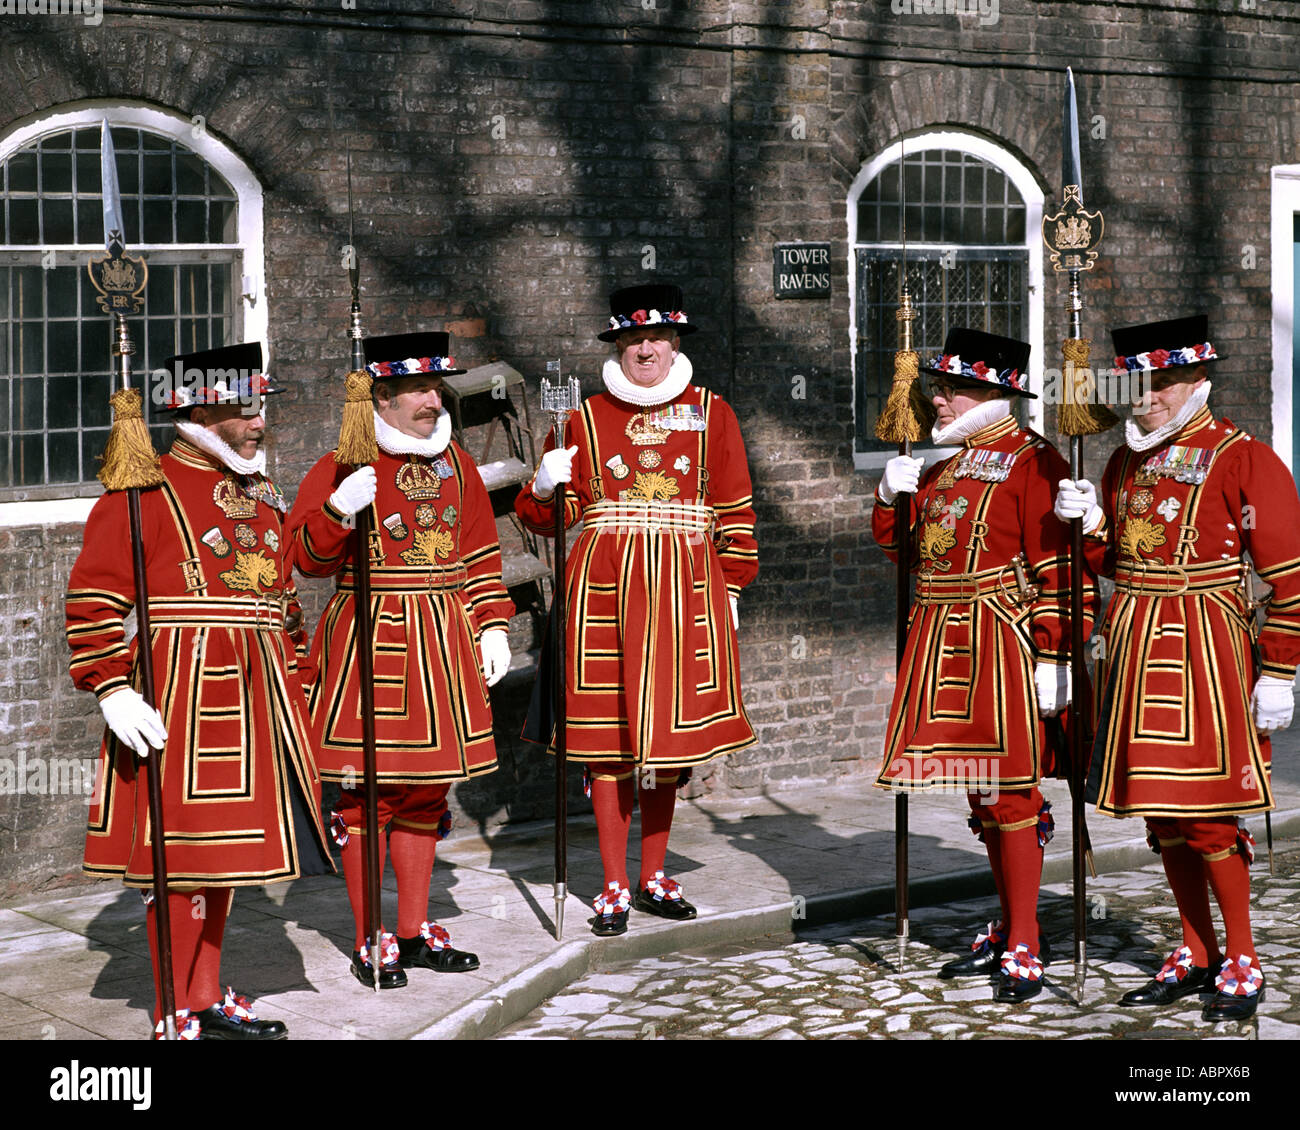 GB - LONDON: Yeoman Warders an der Tower of London Stockfoto